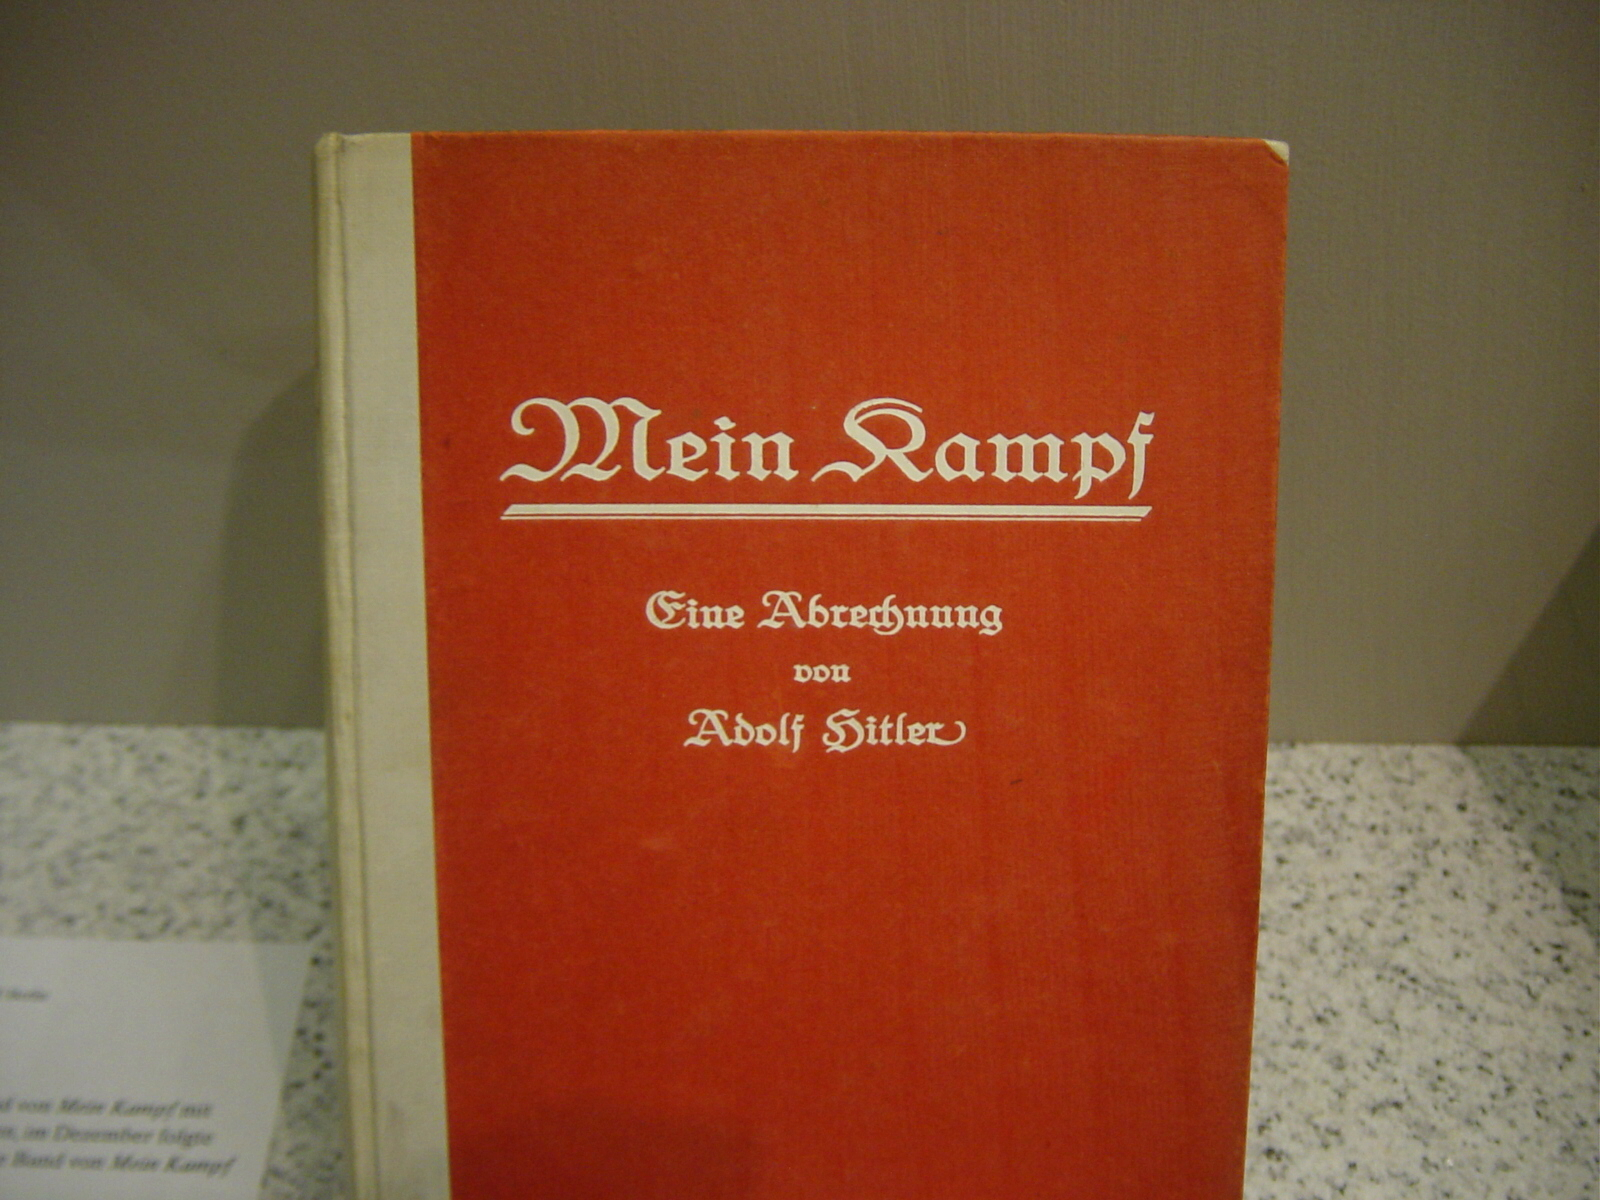 mein kampf Mein kampf has 27,157 ratings and 2,606 reviews manny said: i was somewhat disturbed to hear from lilo that the negative review of er ist wieder da wh.